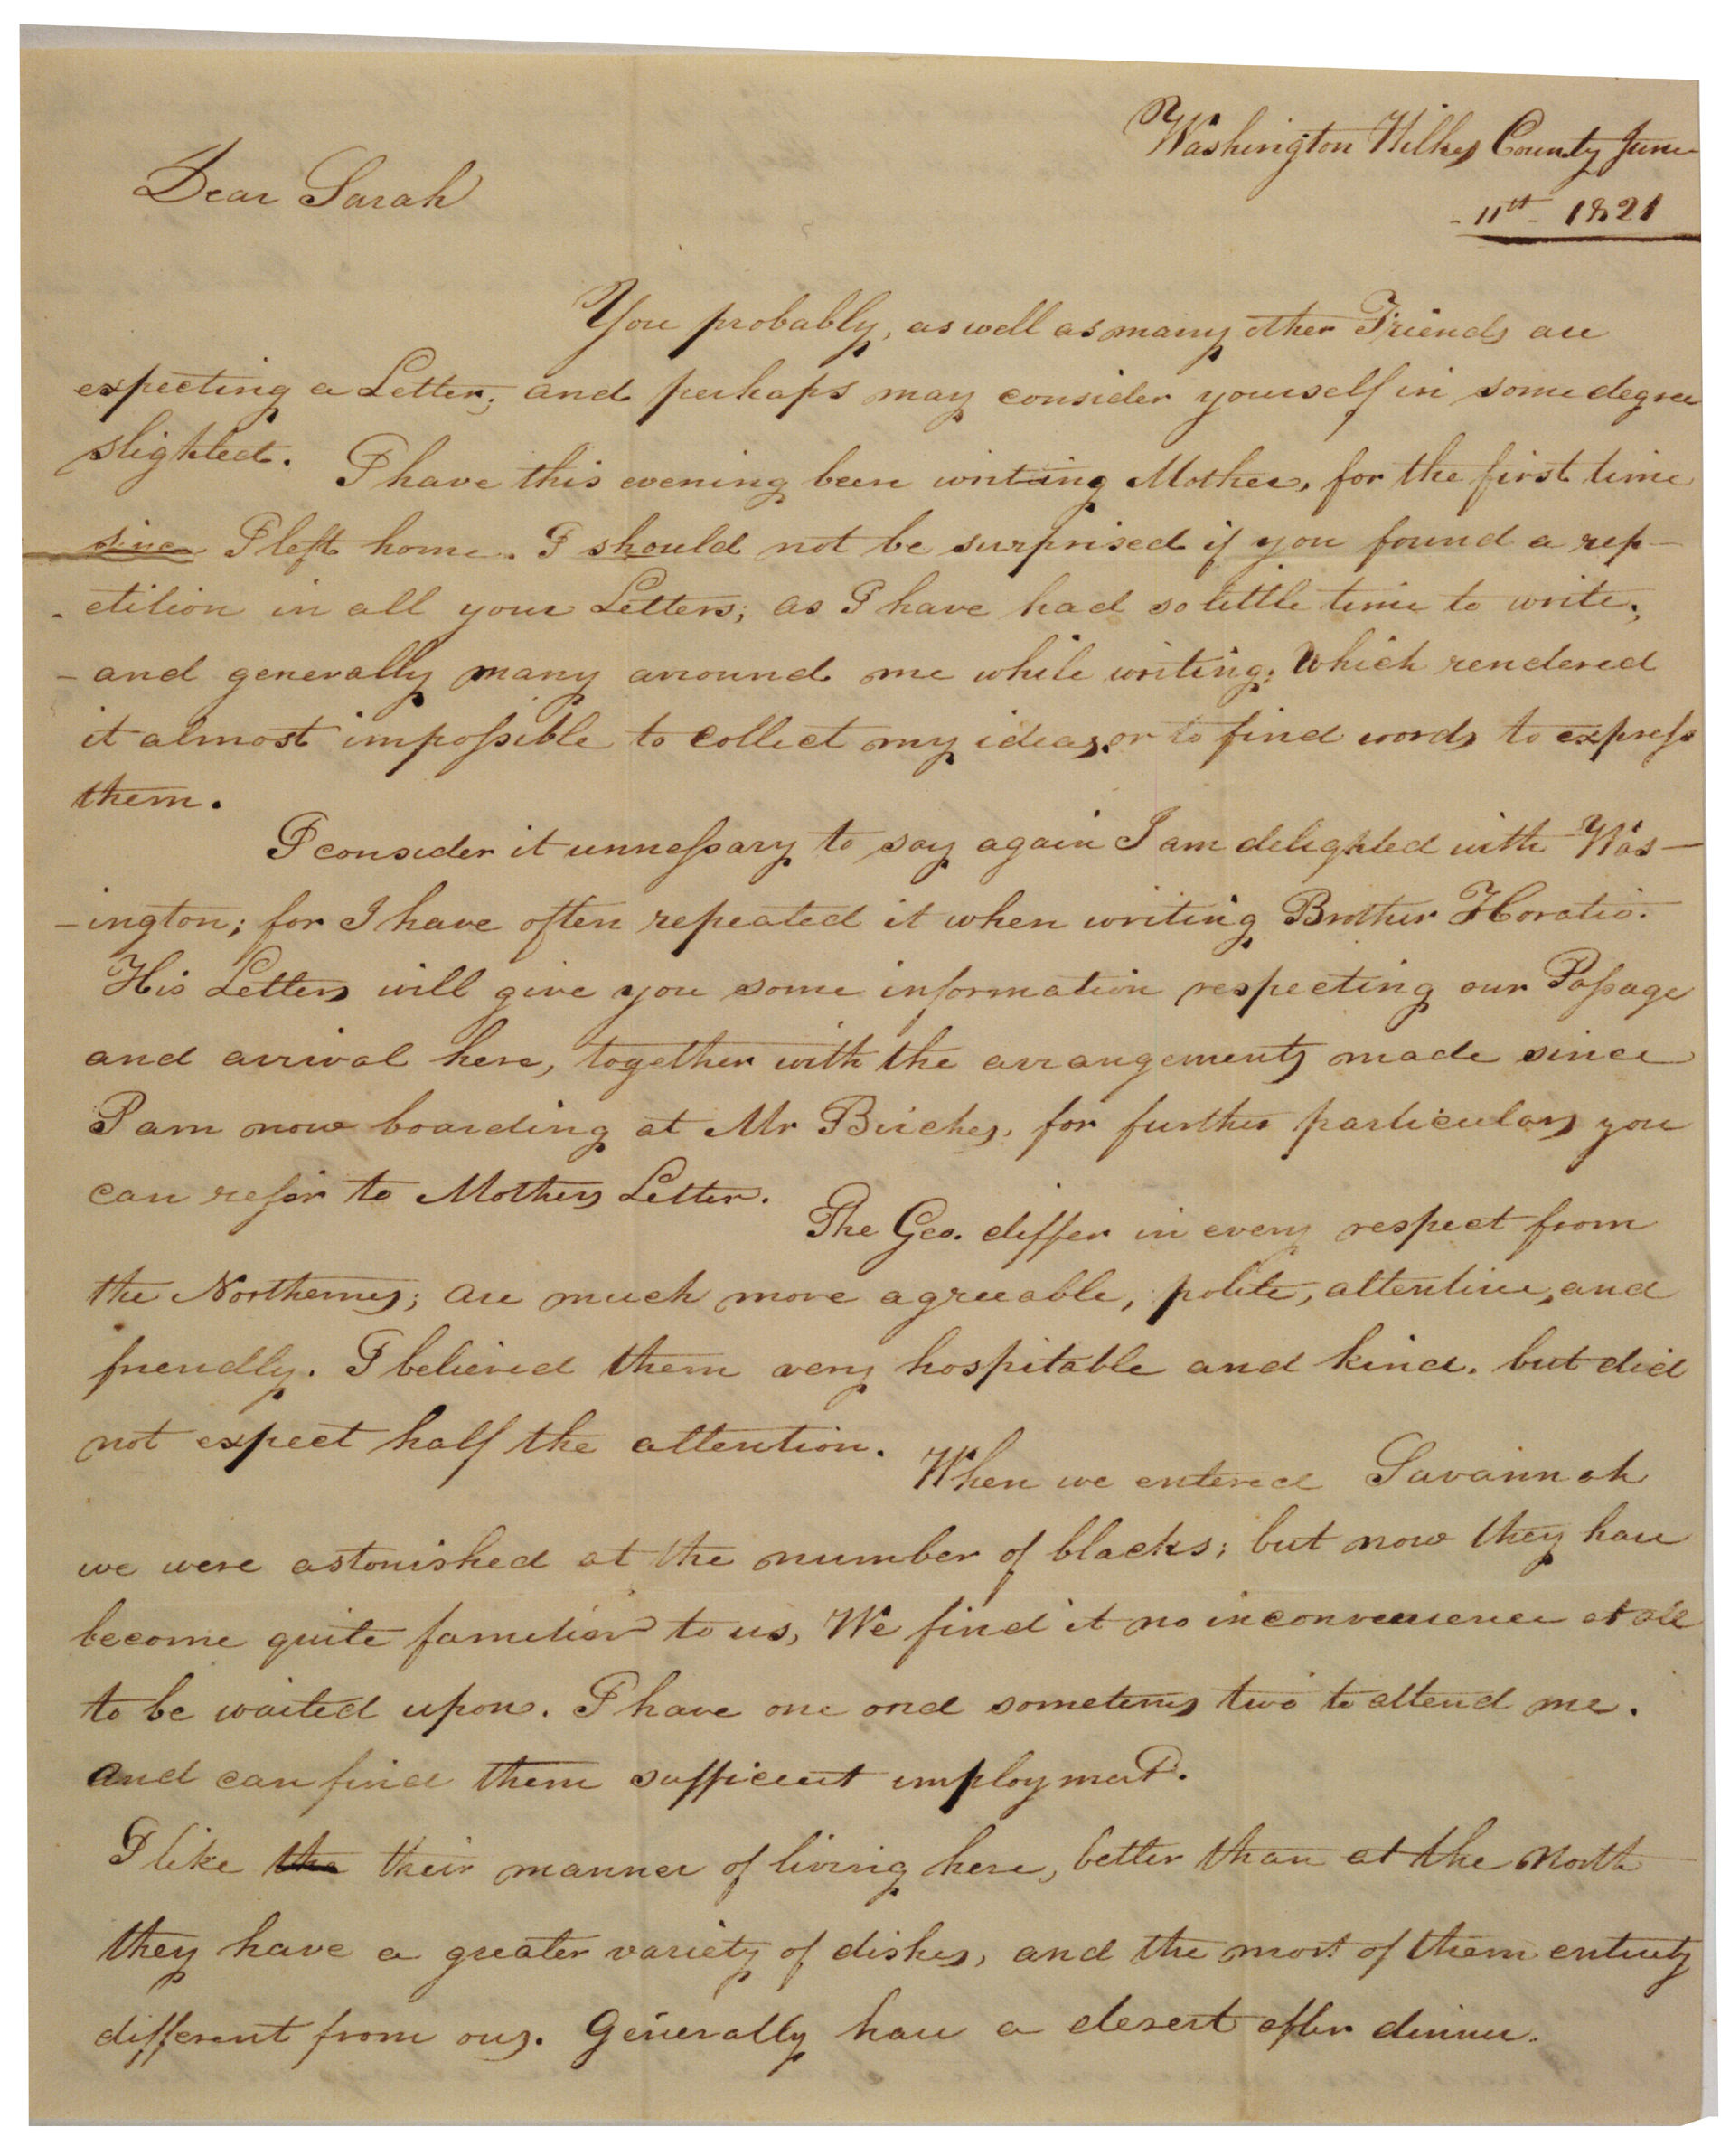 Aurelia Hale to her sister Sarah, June 11, 1821.  (Gilder Lehrman Collection)